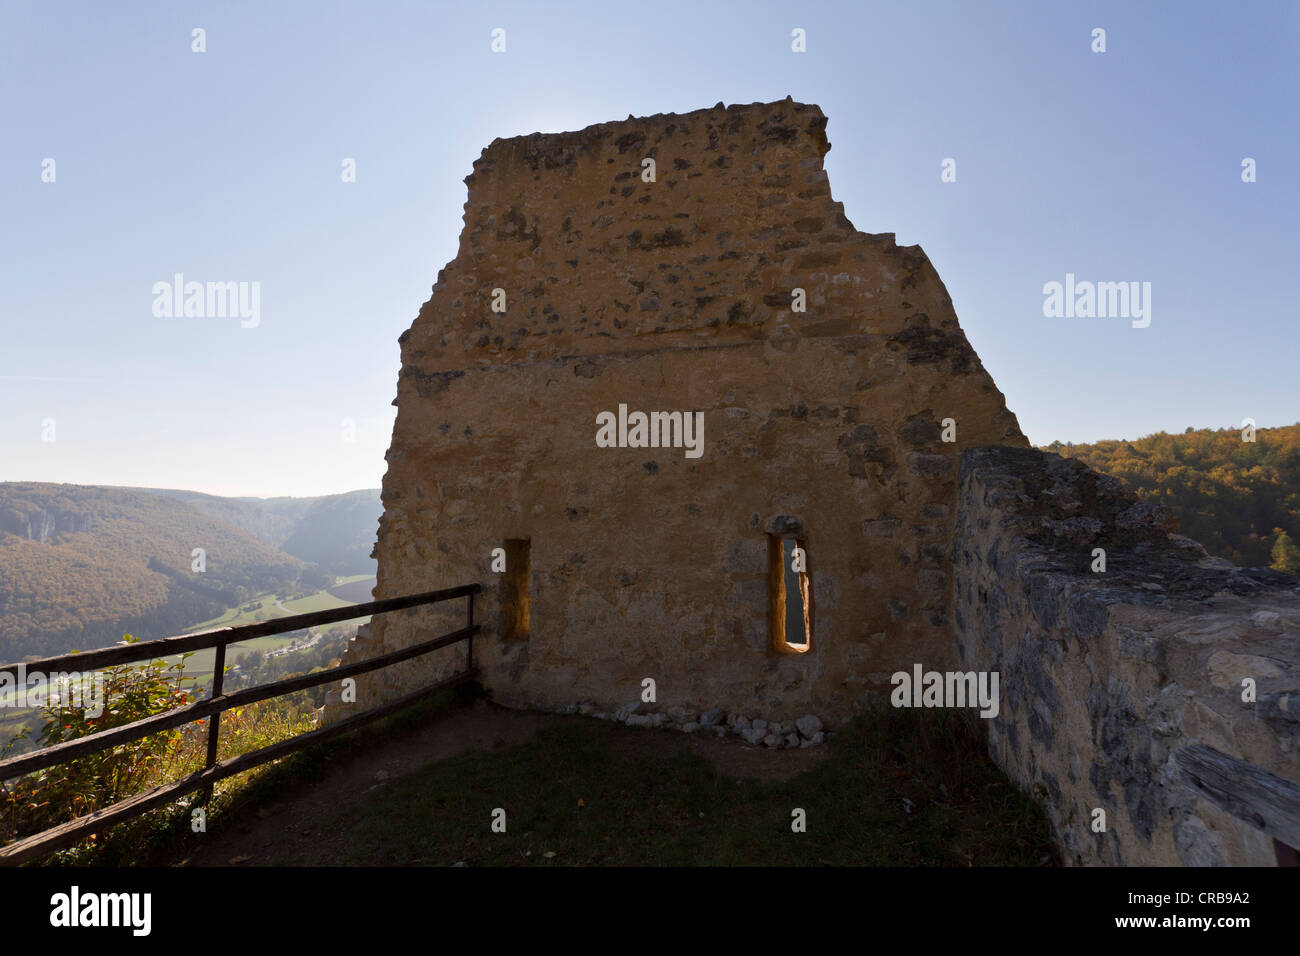 Ruins of Schloss Hausen castle, preserved gable wall, Upper Danube Nature Park, Sigmaringen district, Baden-Wuerttemberg - Stock Image